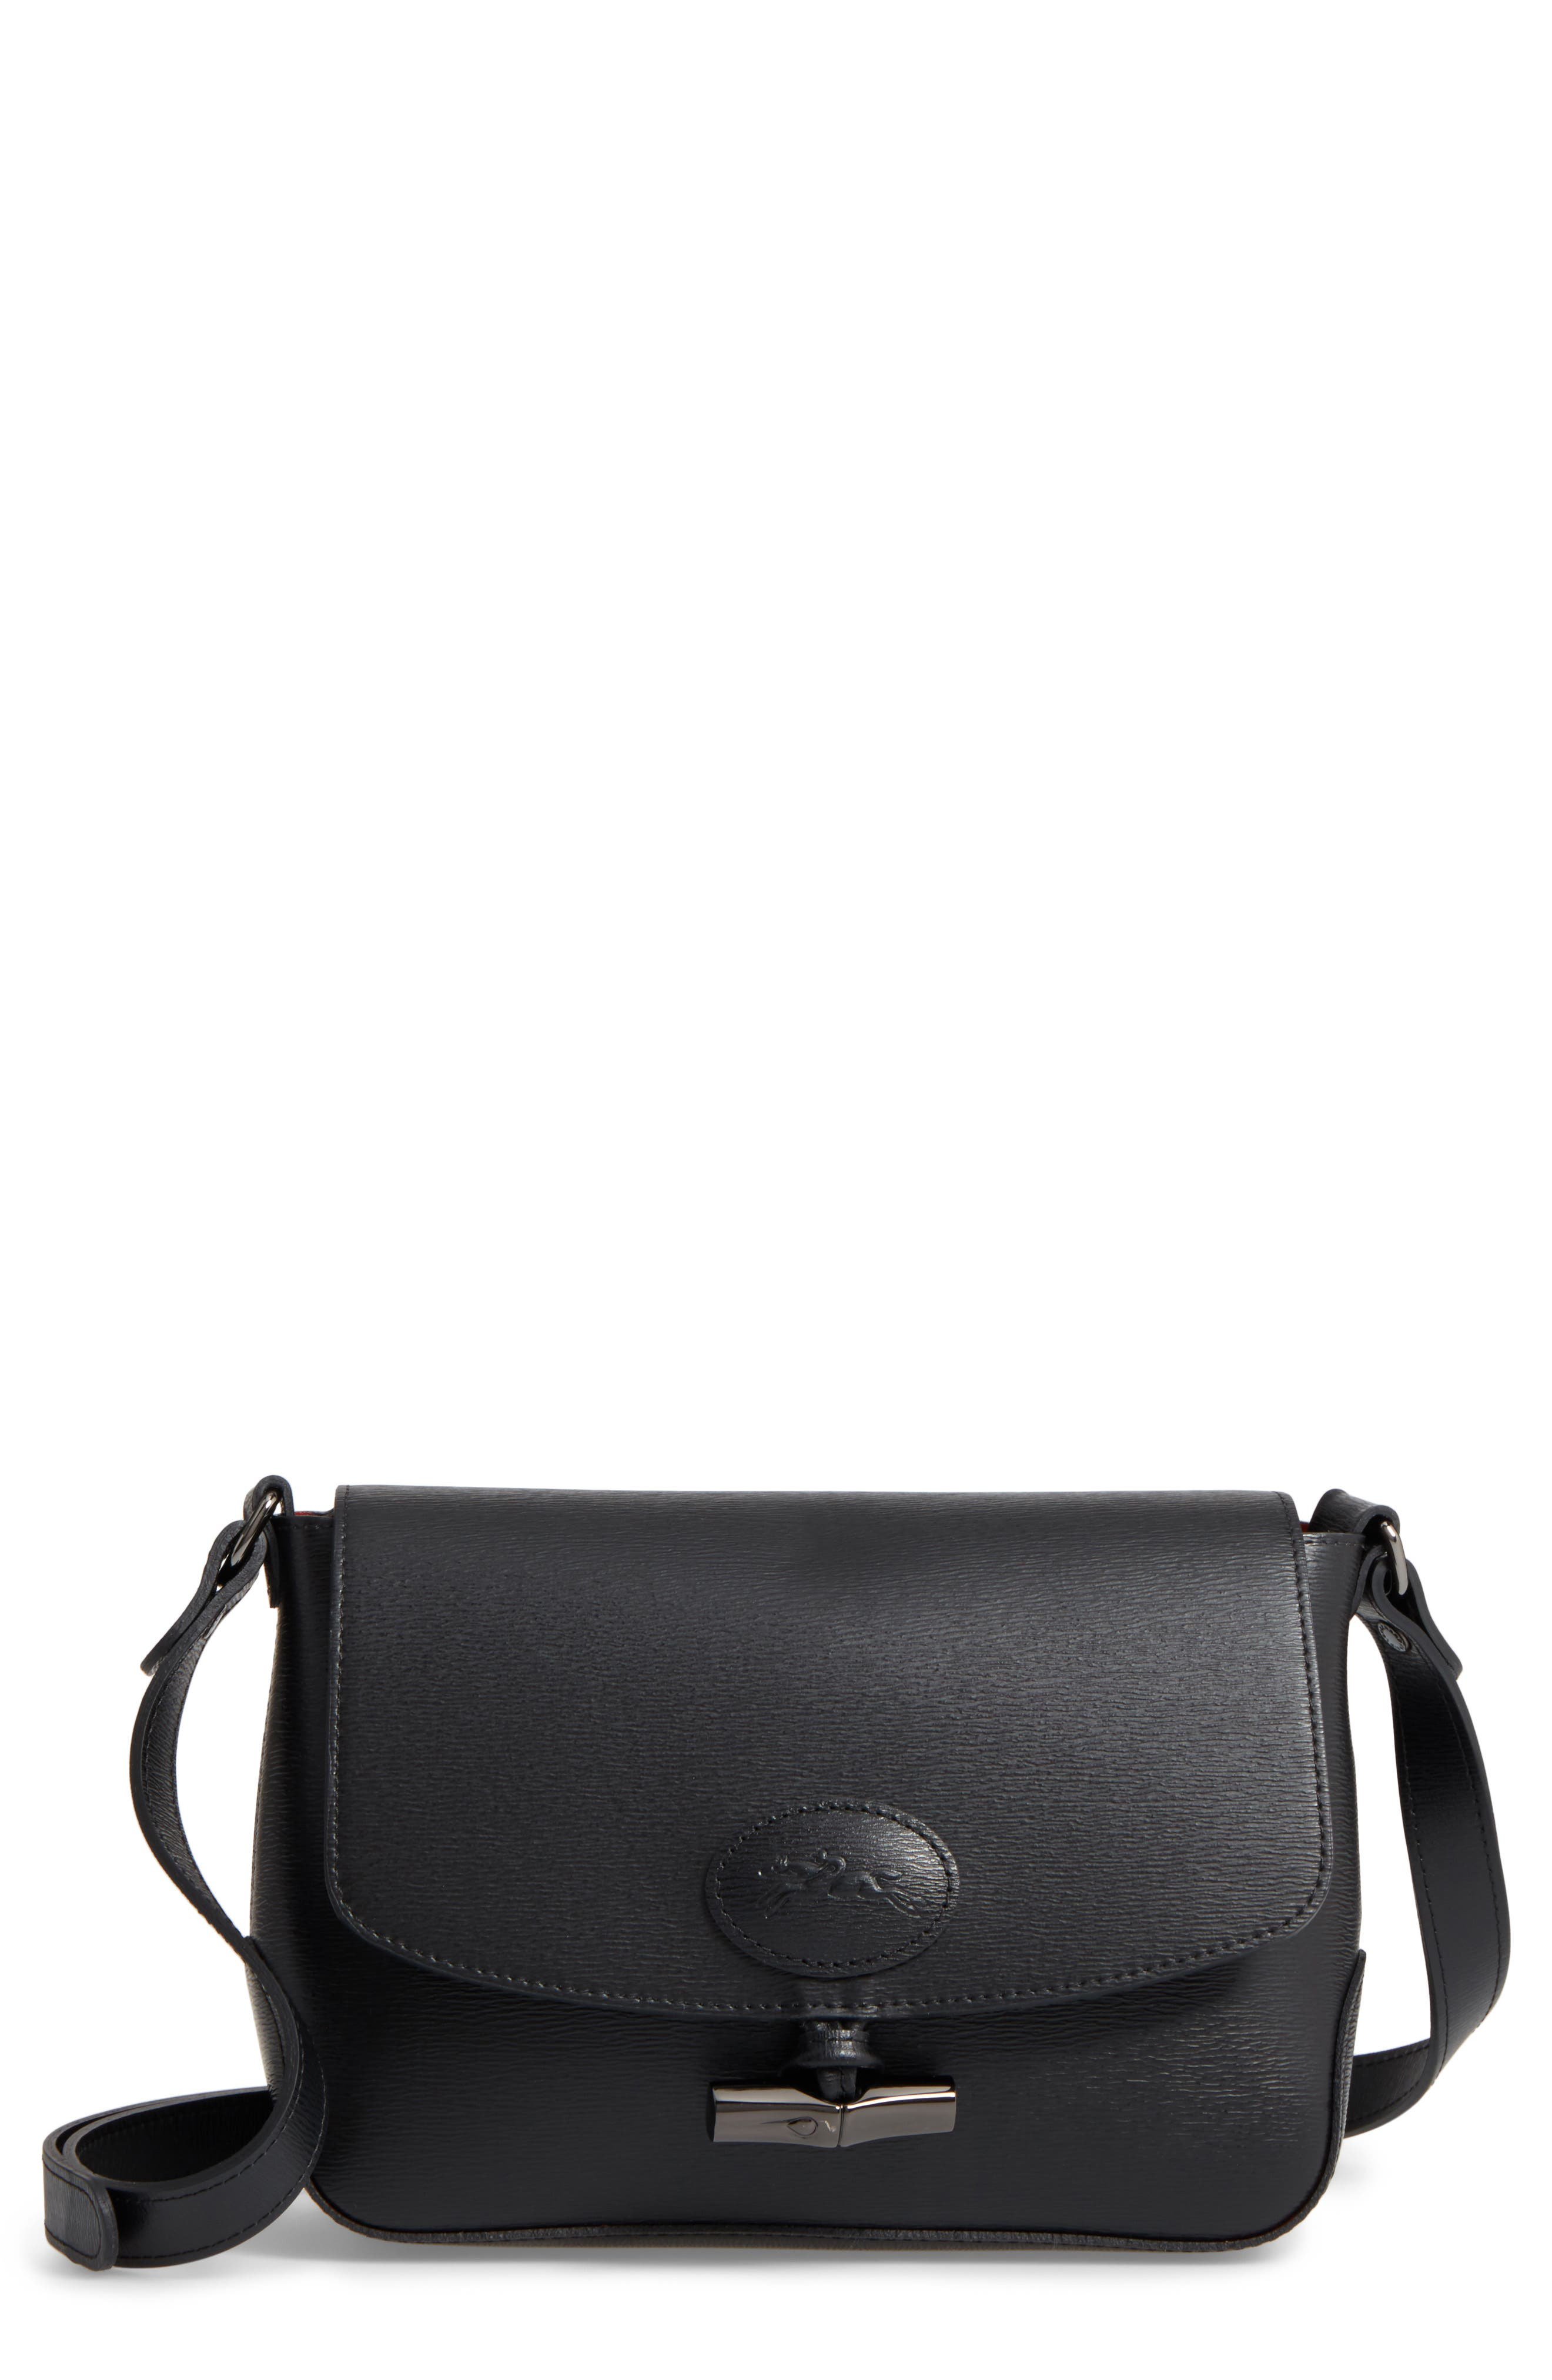 Roseau Leather Crossbody Bag,                             Main thumbnail 1, color,                             Black